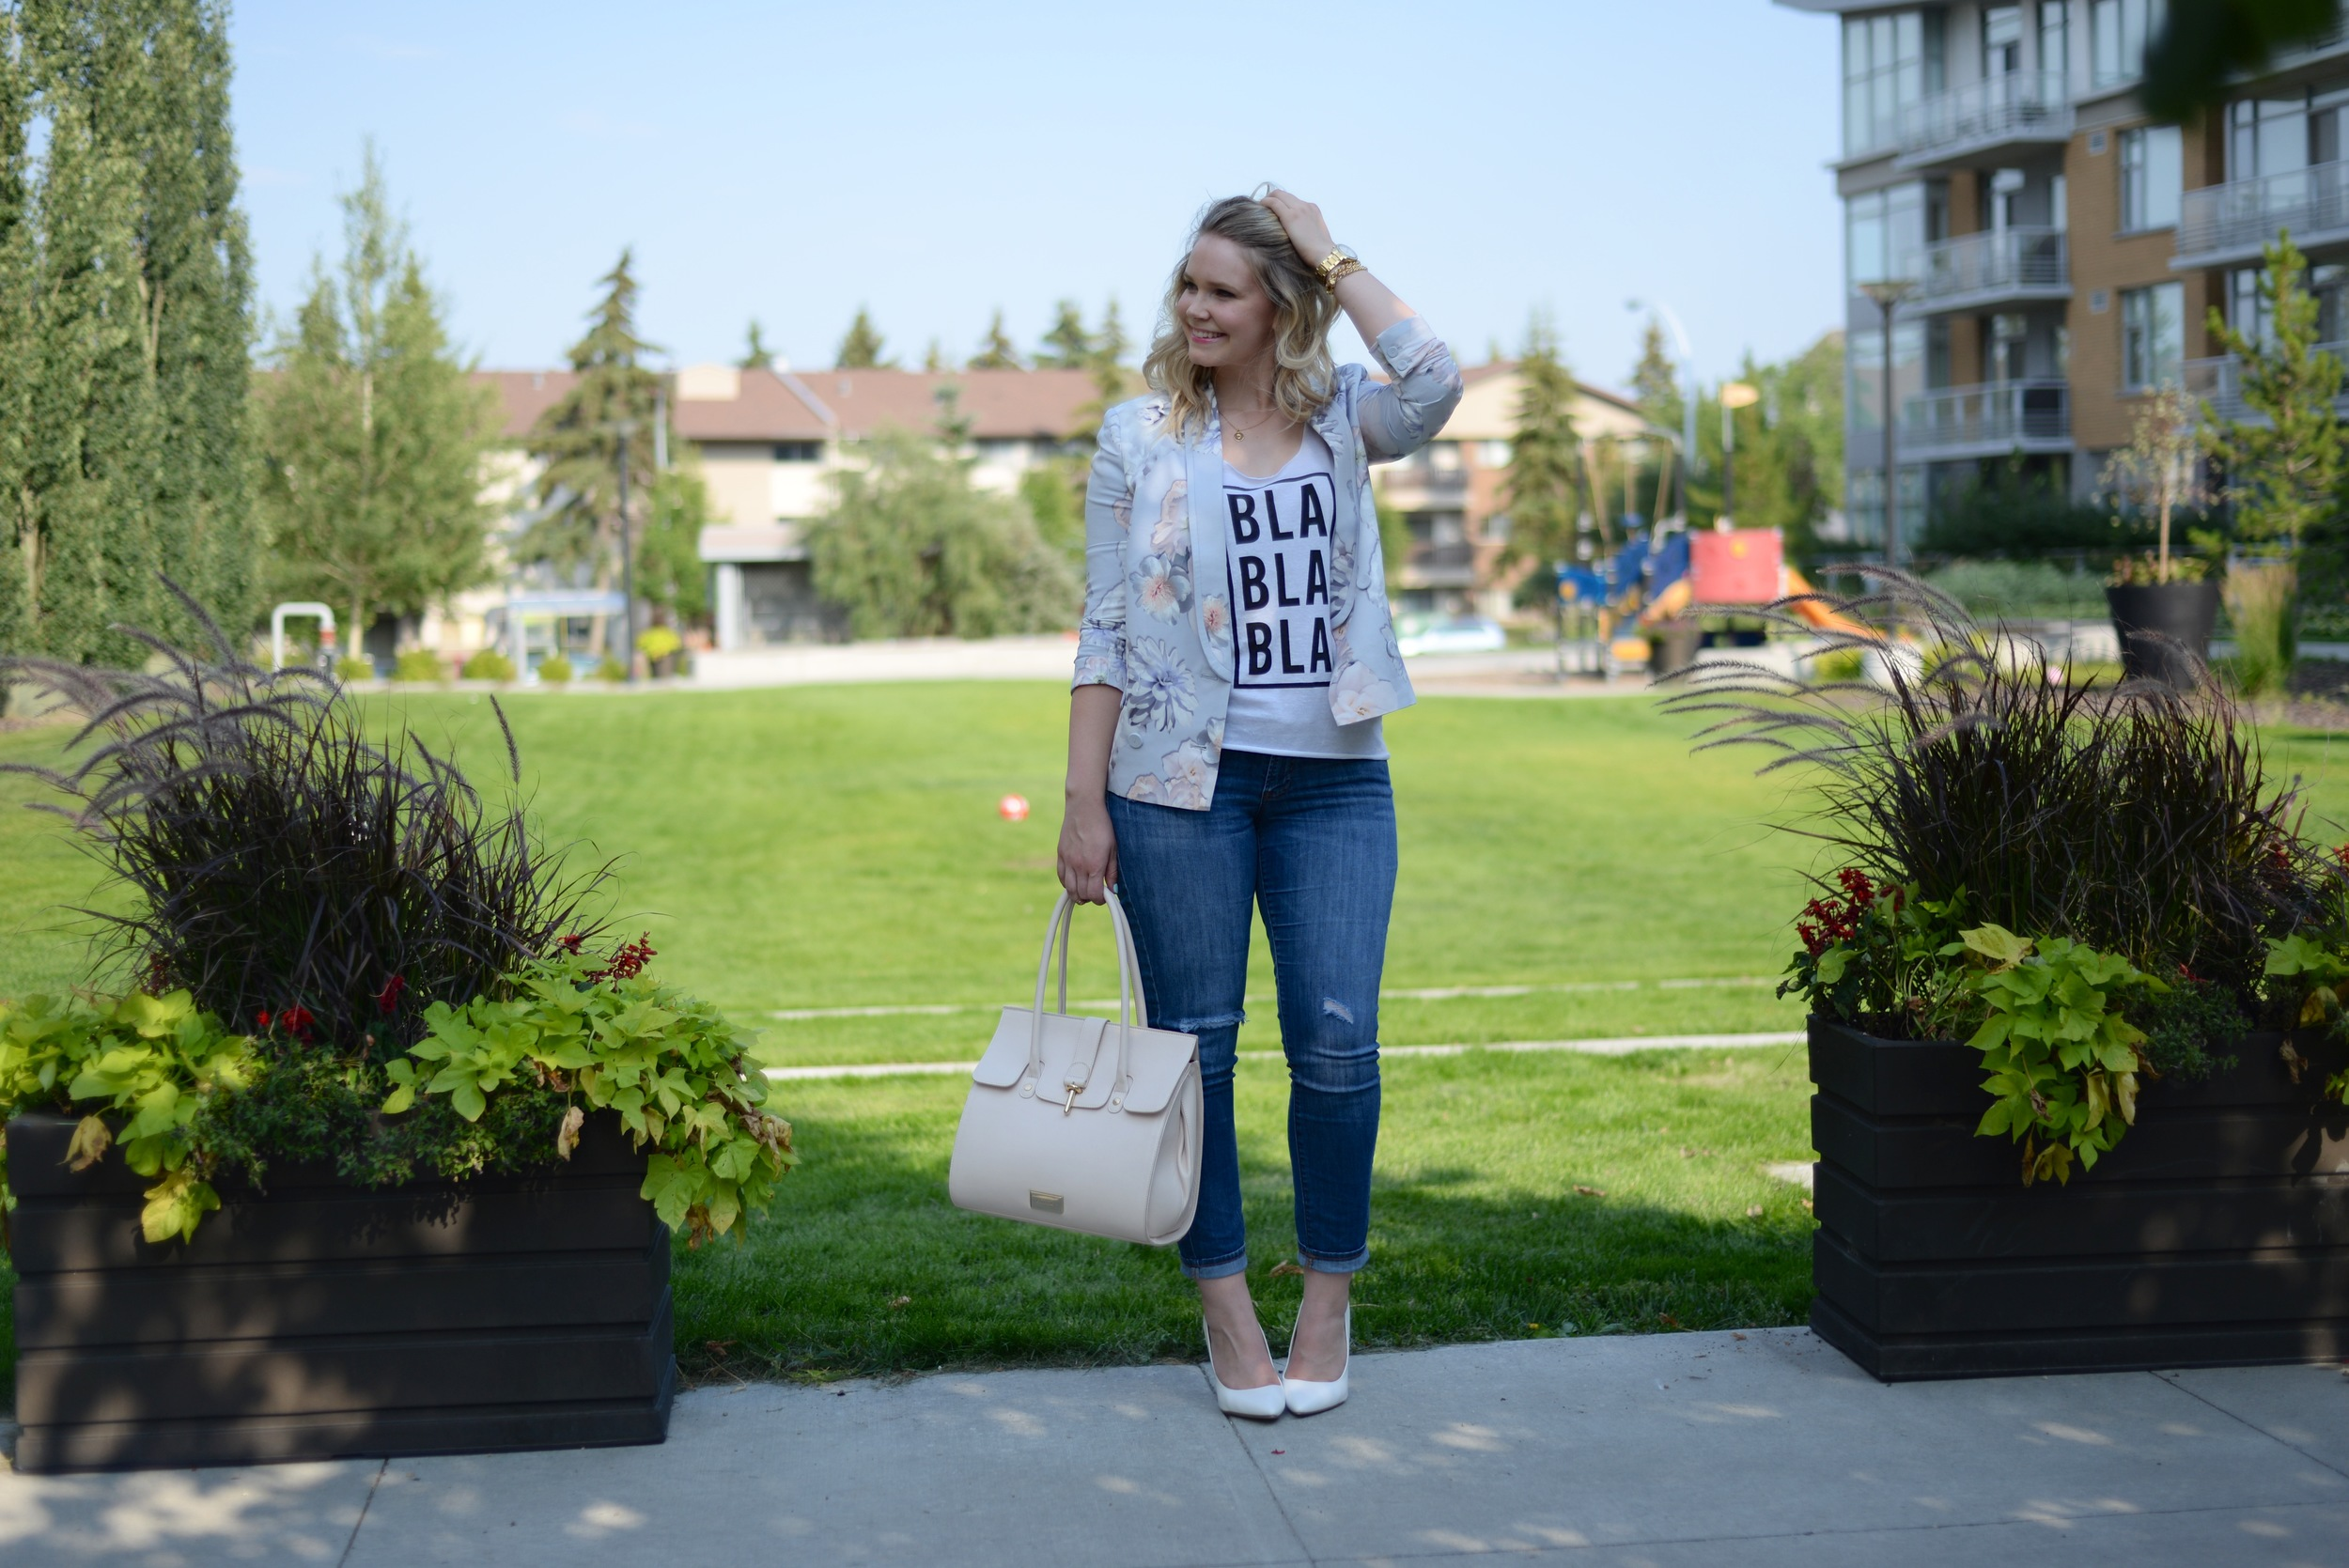 edmonton fashion blog, graphic tee, floral blazer